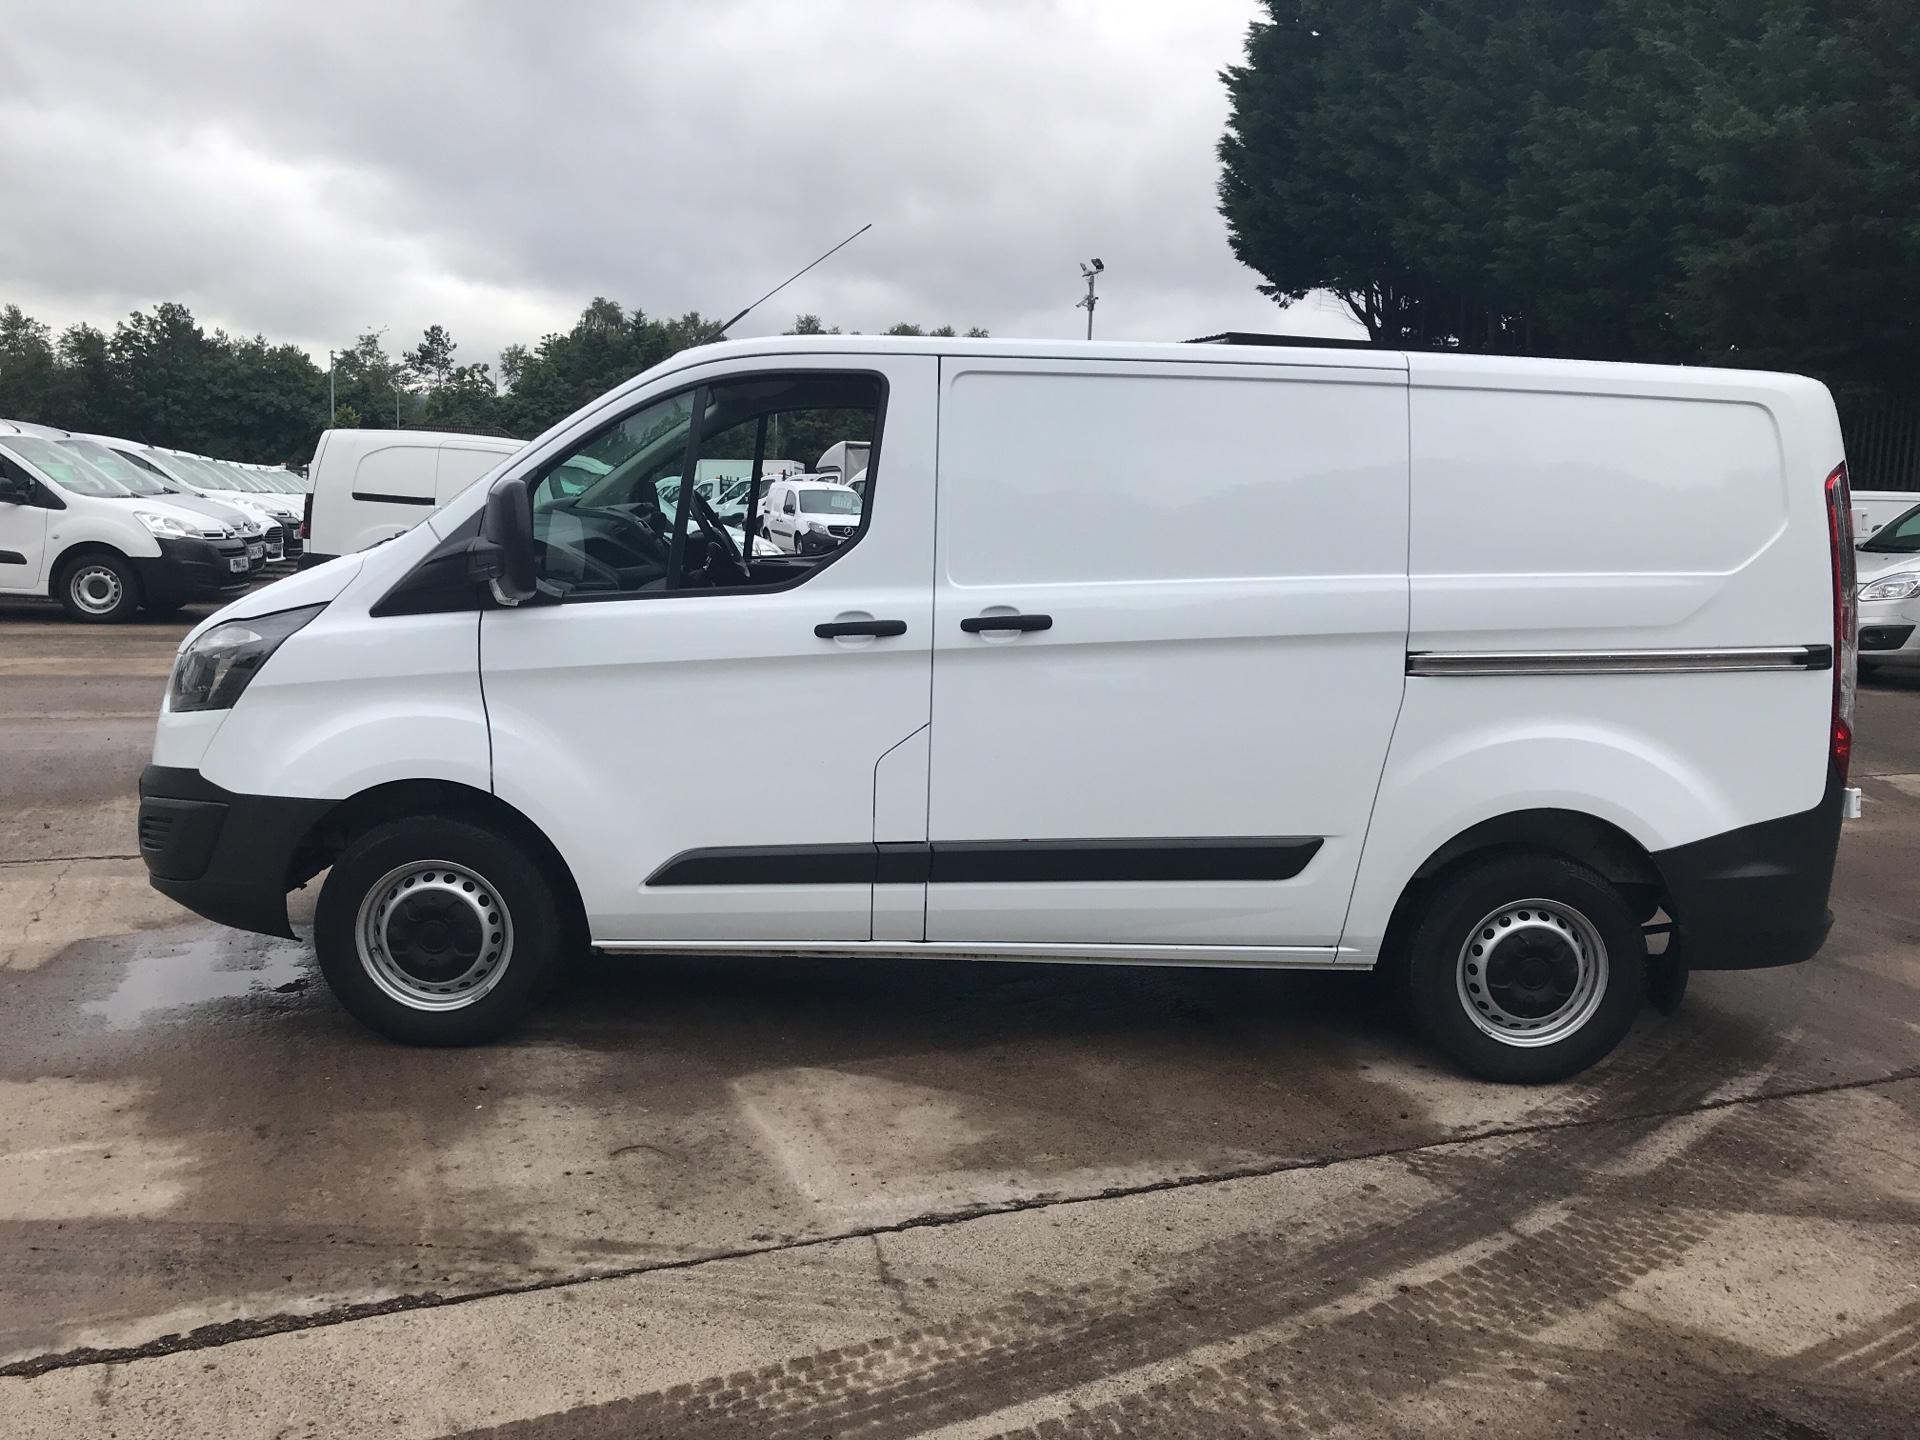 2017 Ford Transit Custom 270 L1 DIESEL FWD 2.2 TDCI 105PS LOW ROOF VAN EURO 5 (SK17ZYG) Thumbnail 6